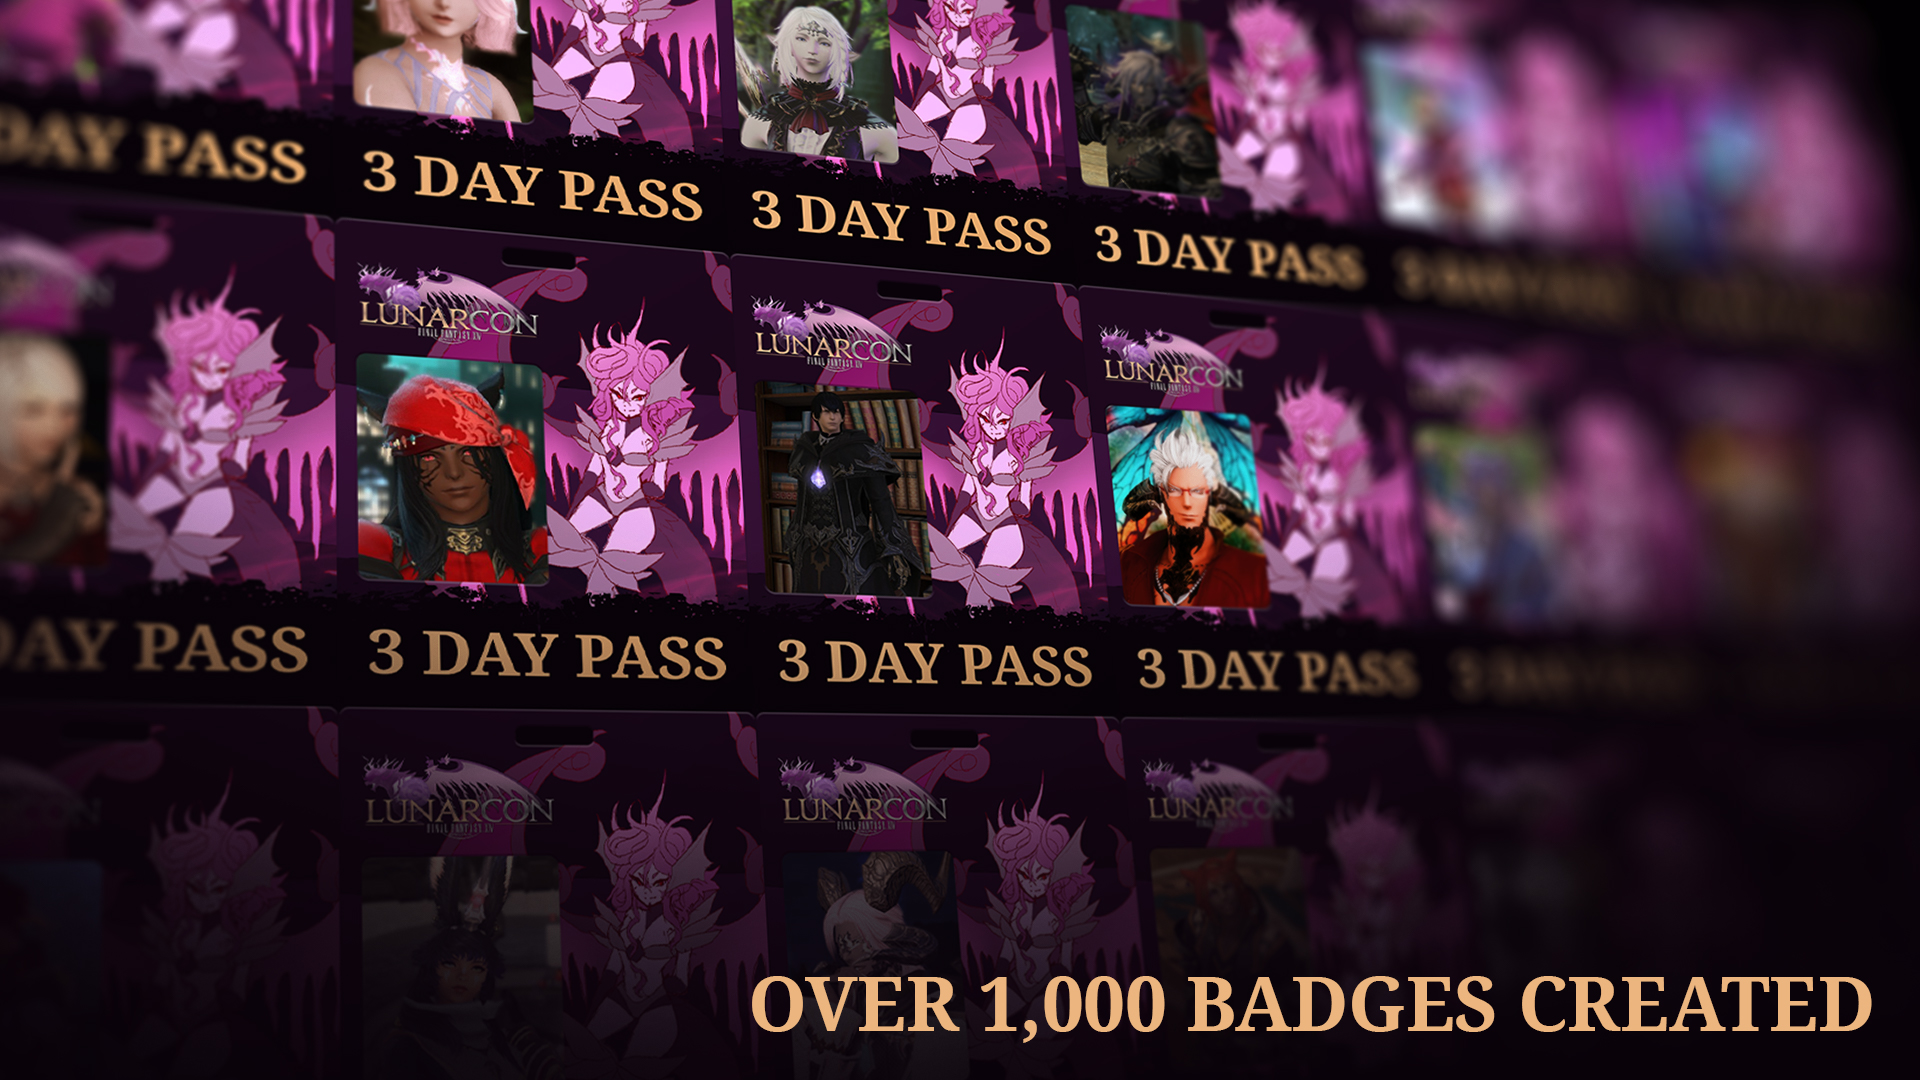 Lunarcon badges created by fans